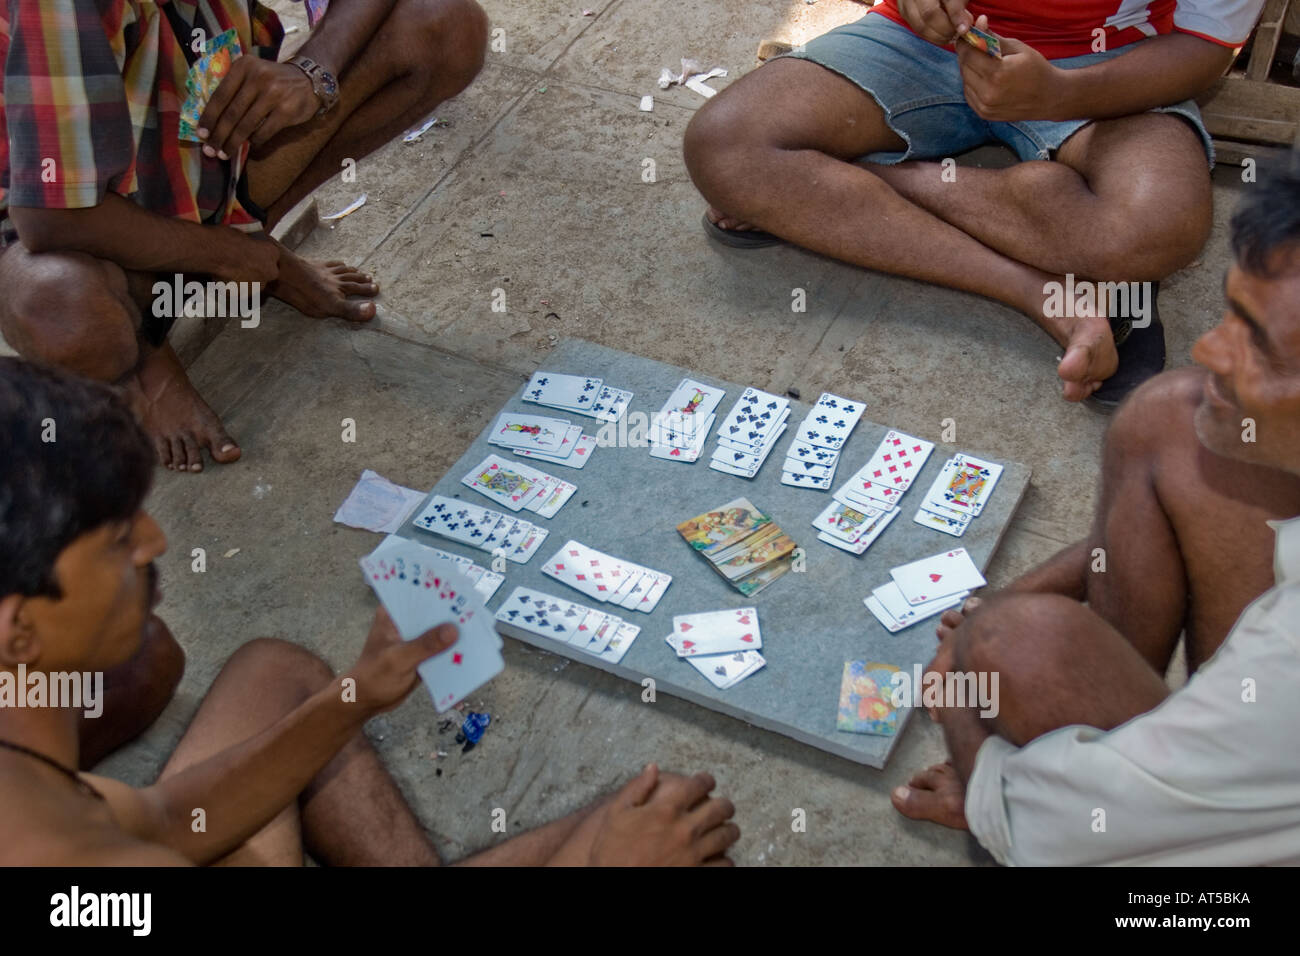 Illegal Gambling On The Streets India Stock Photo Alamy